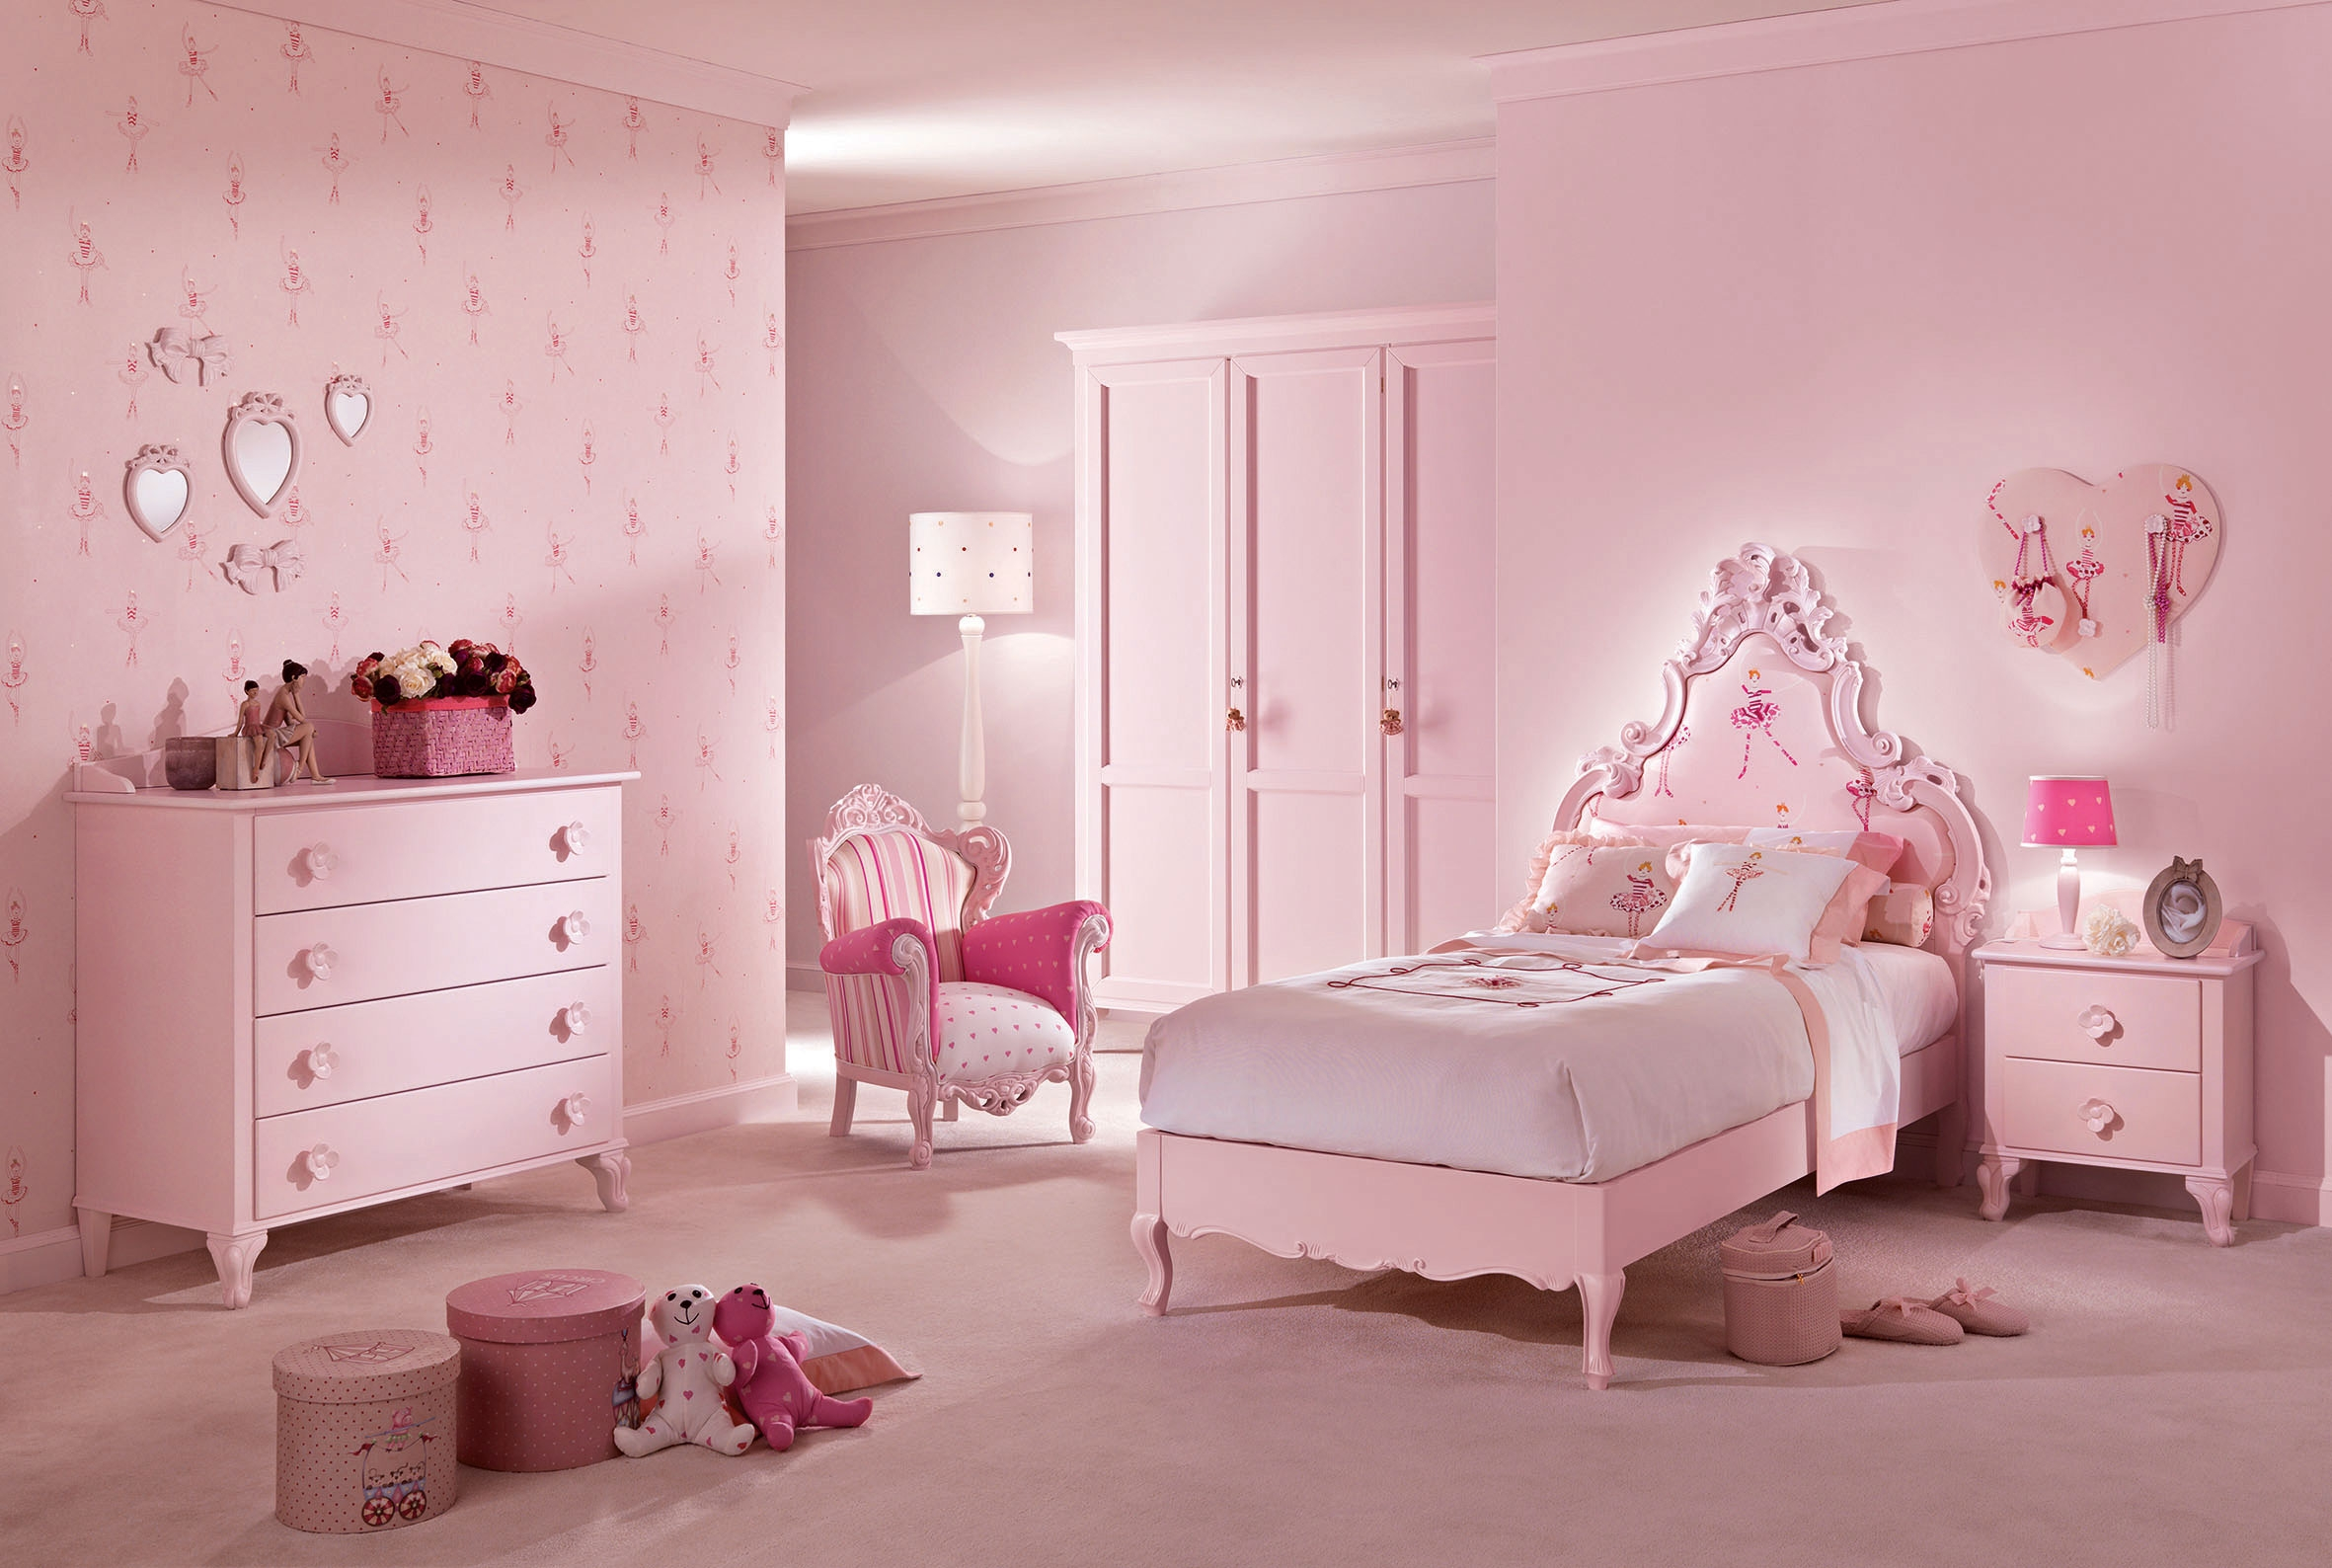 Best model lit de chambre pictures awesome interior home - Photo de chambre ado fille ...